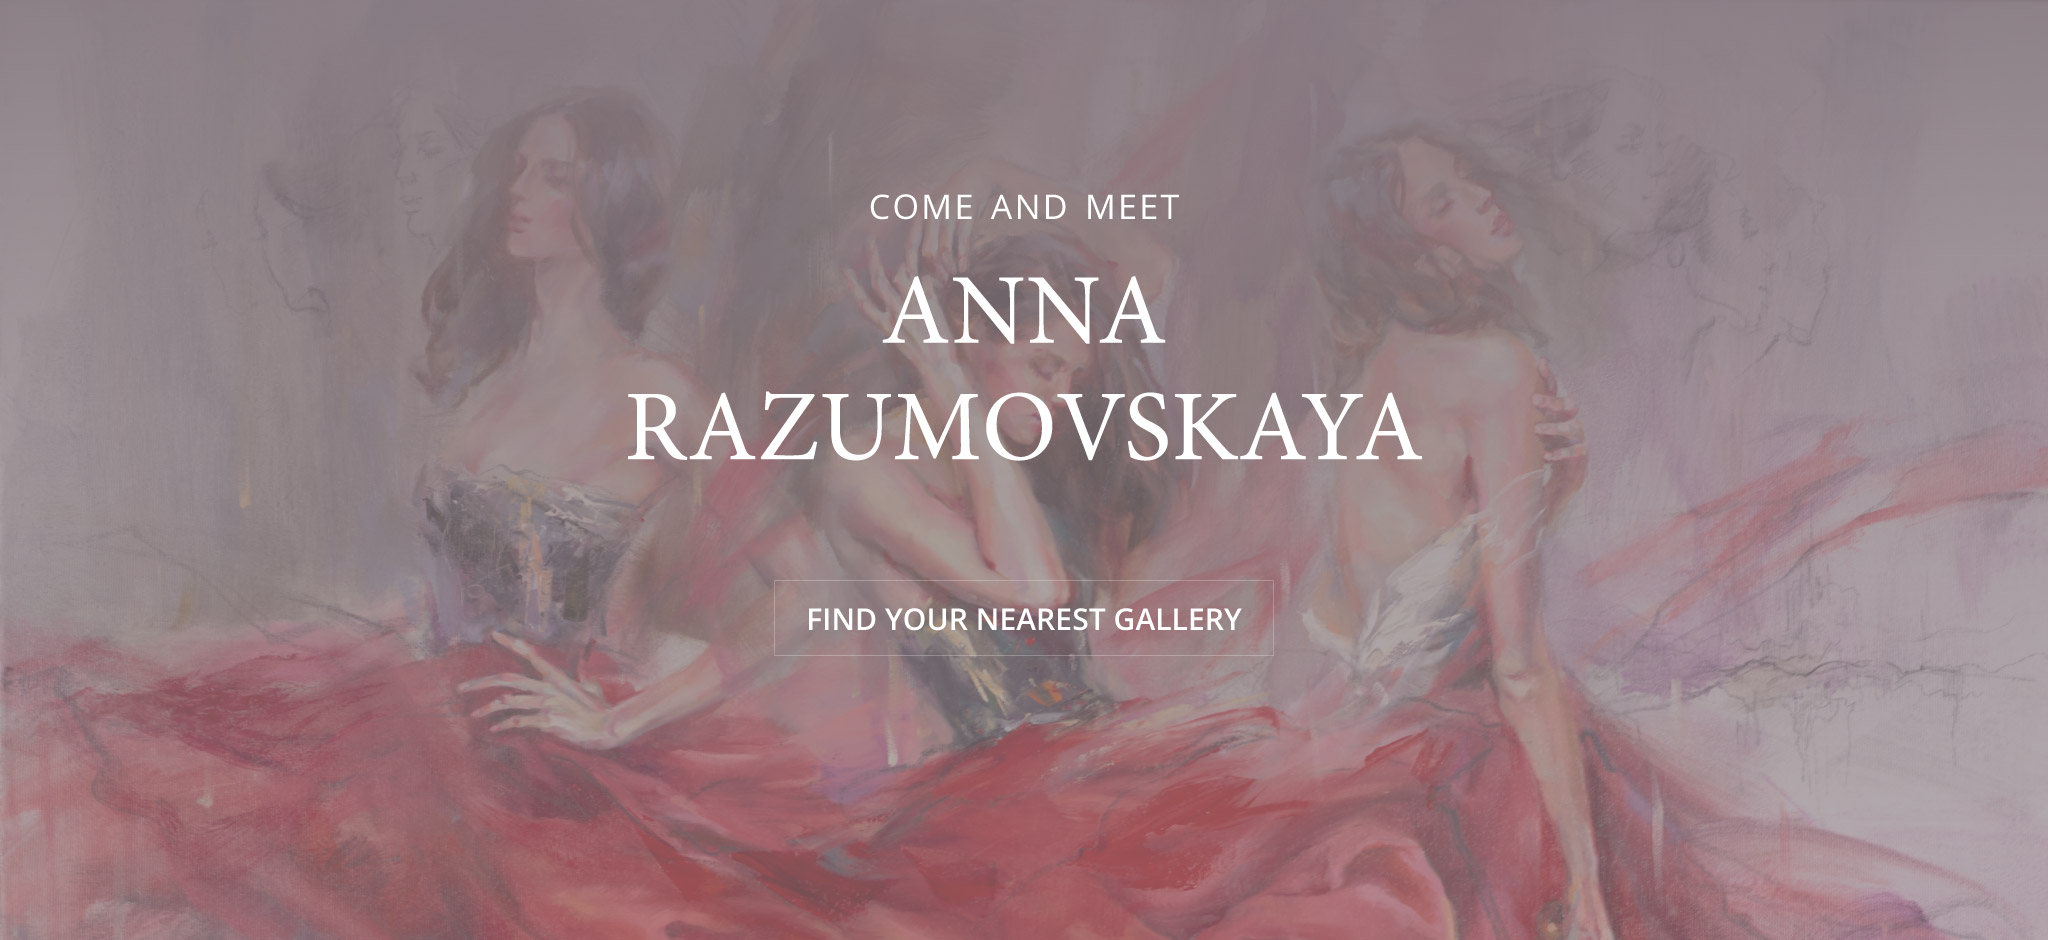 Come and Meet Anna Razumovskaya